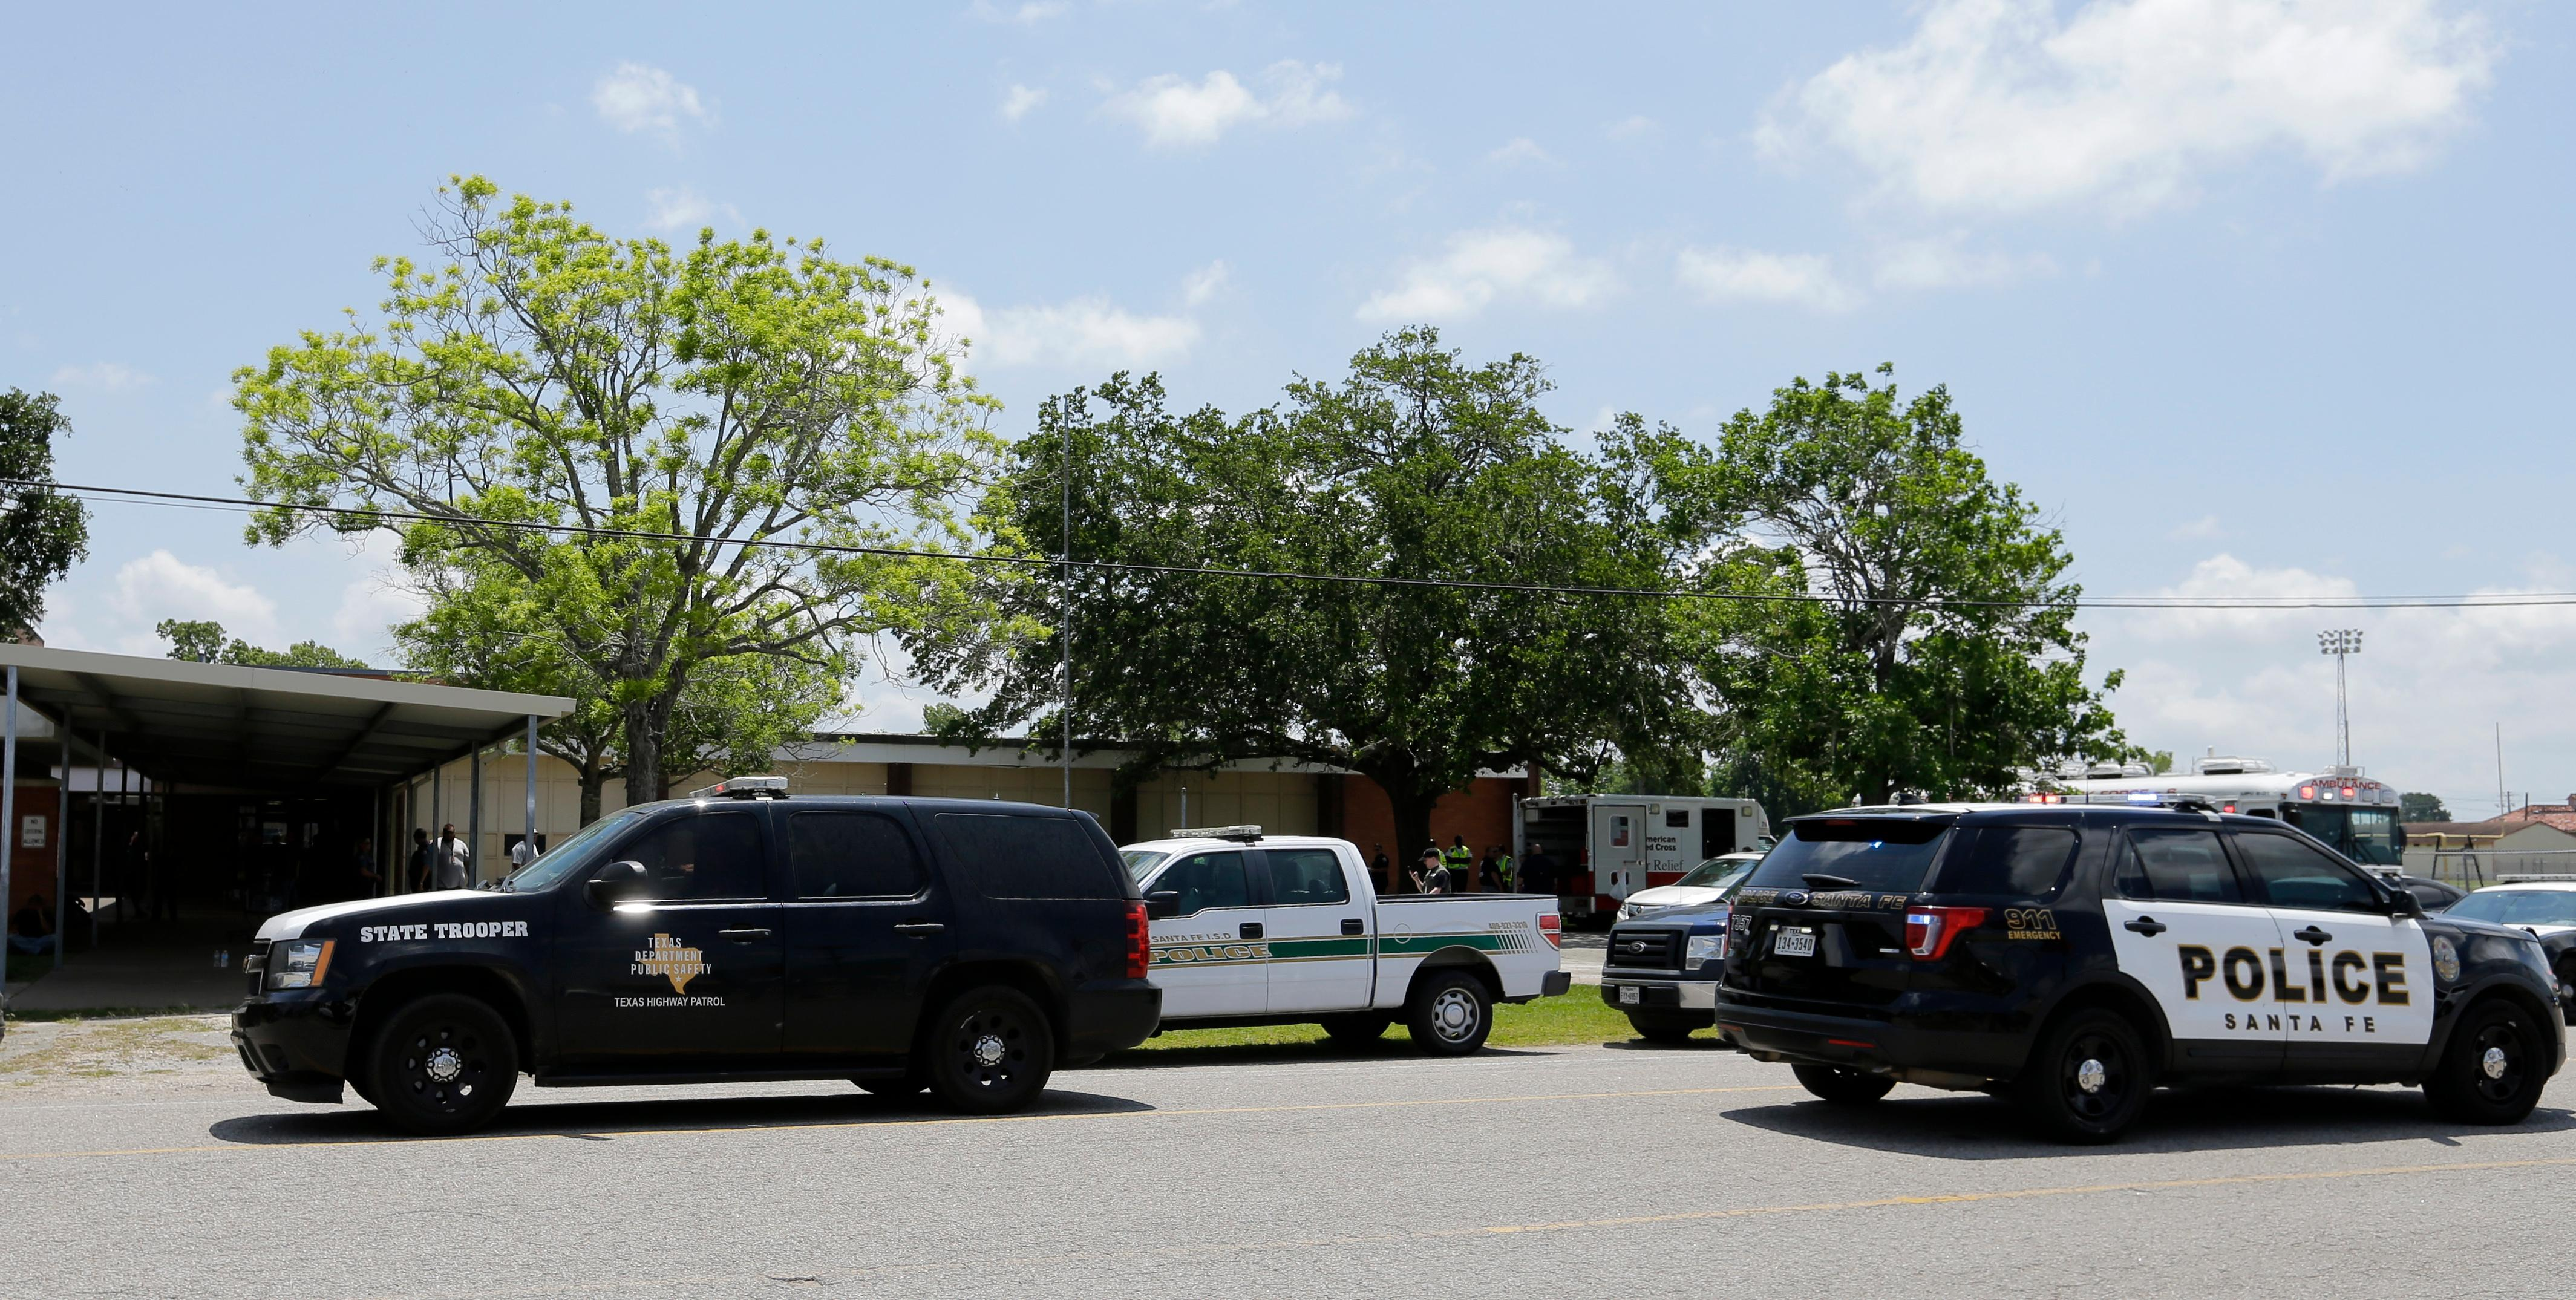 Law enforcement vehicles are parked outside the Alamo Gym where students and parents wait to reunite following a shooting at Santa Fe High School Friday, May 18, 2018, in Santa Fe, Texas. (AP Photo/David J. Phillip)